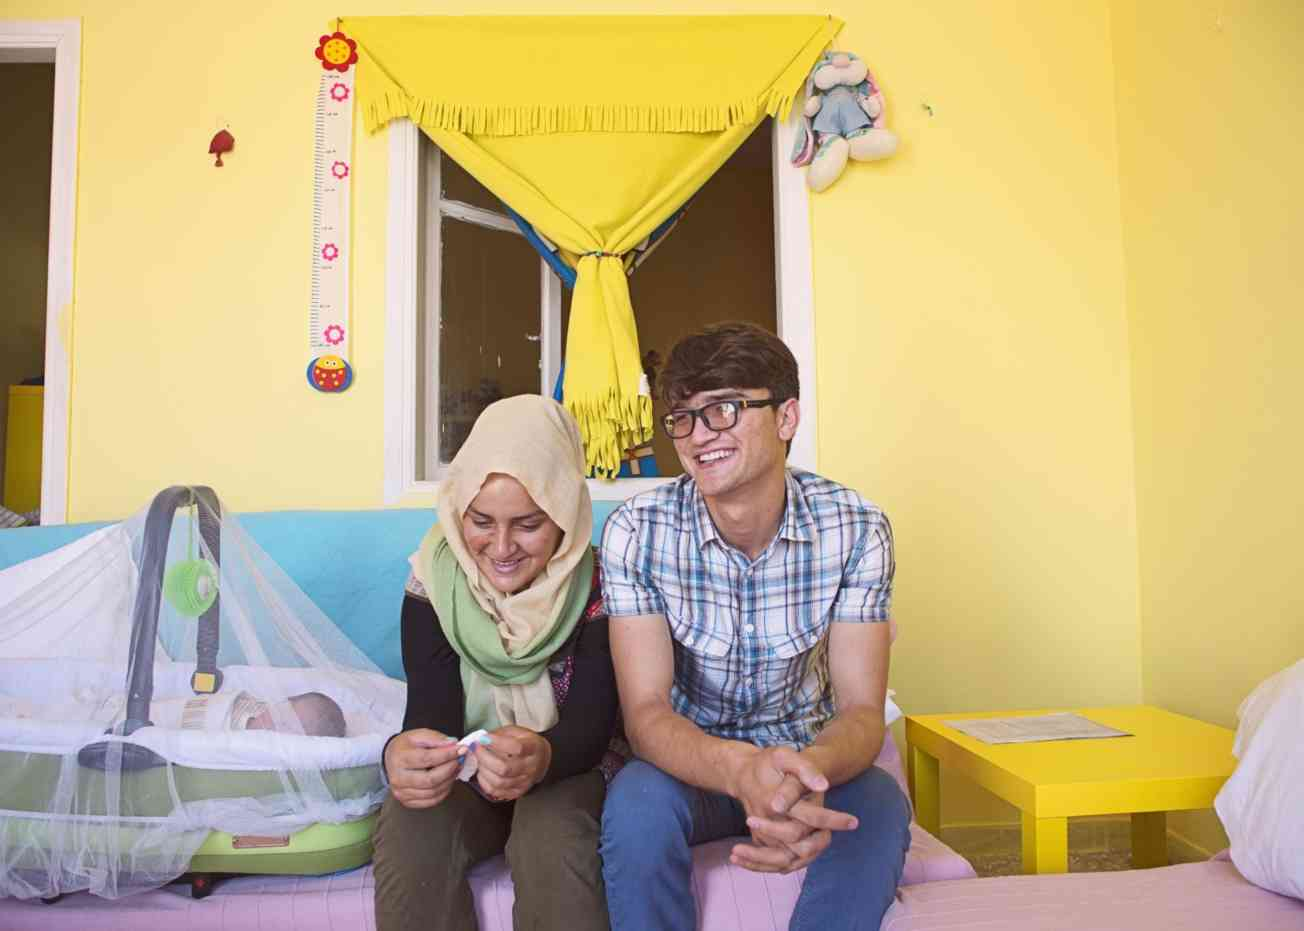 Ahmad and his wife 2